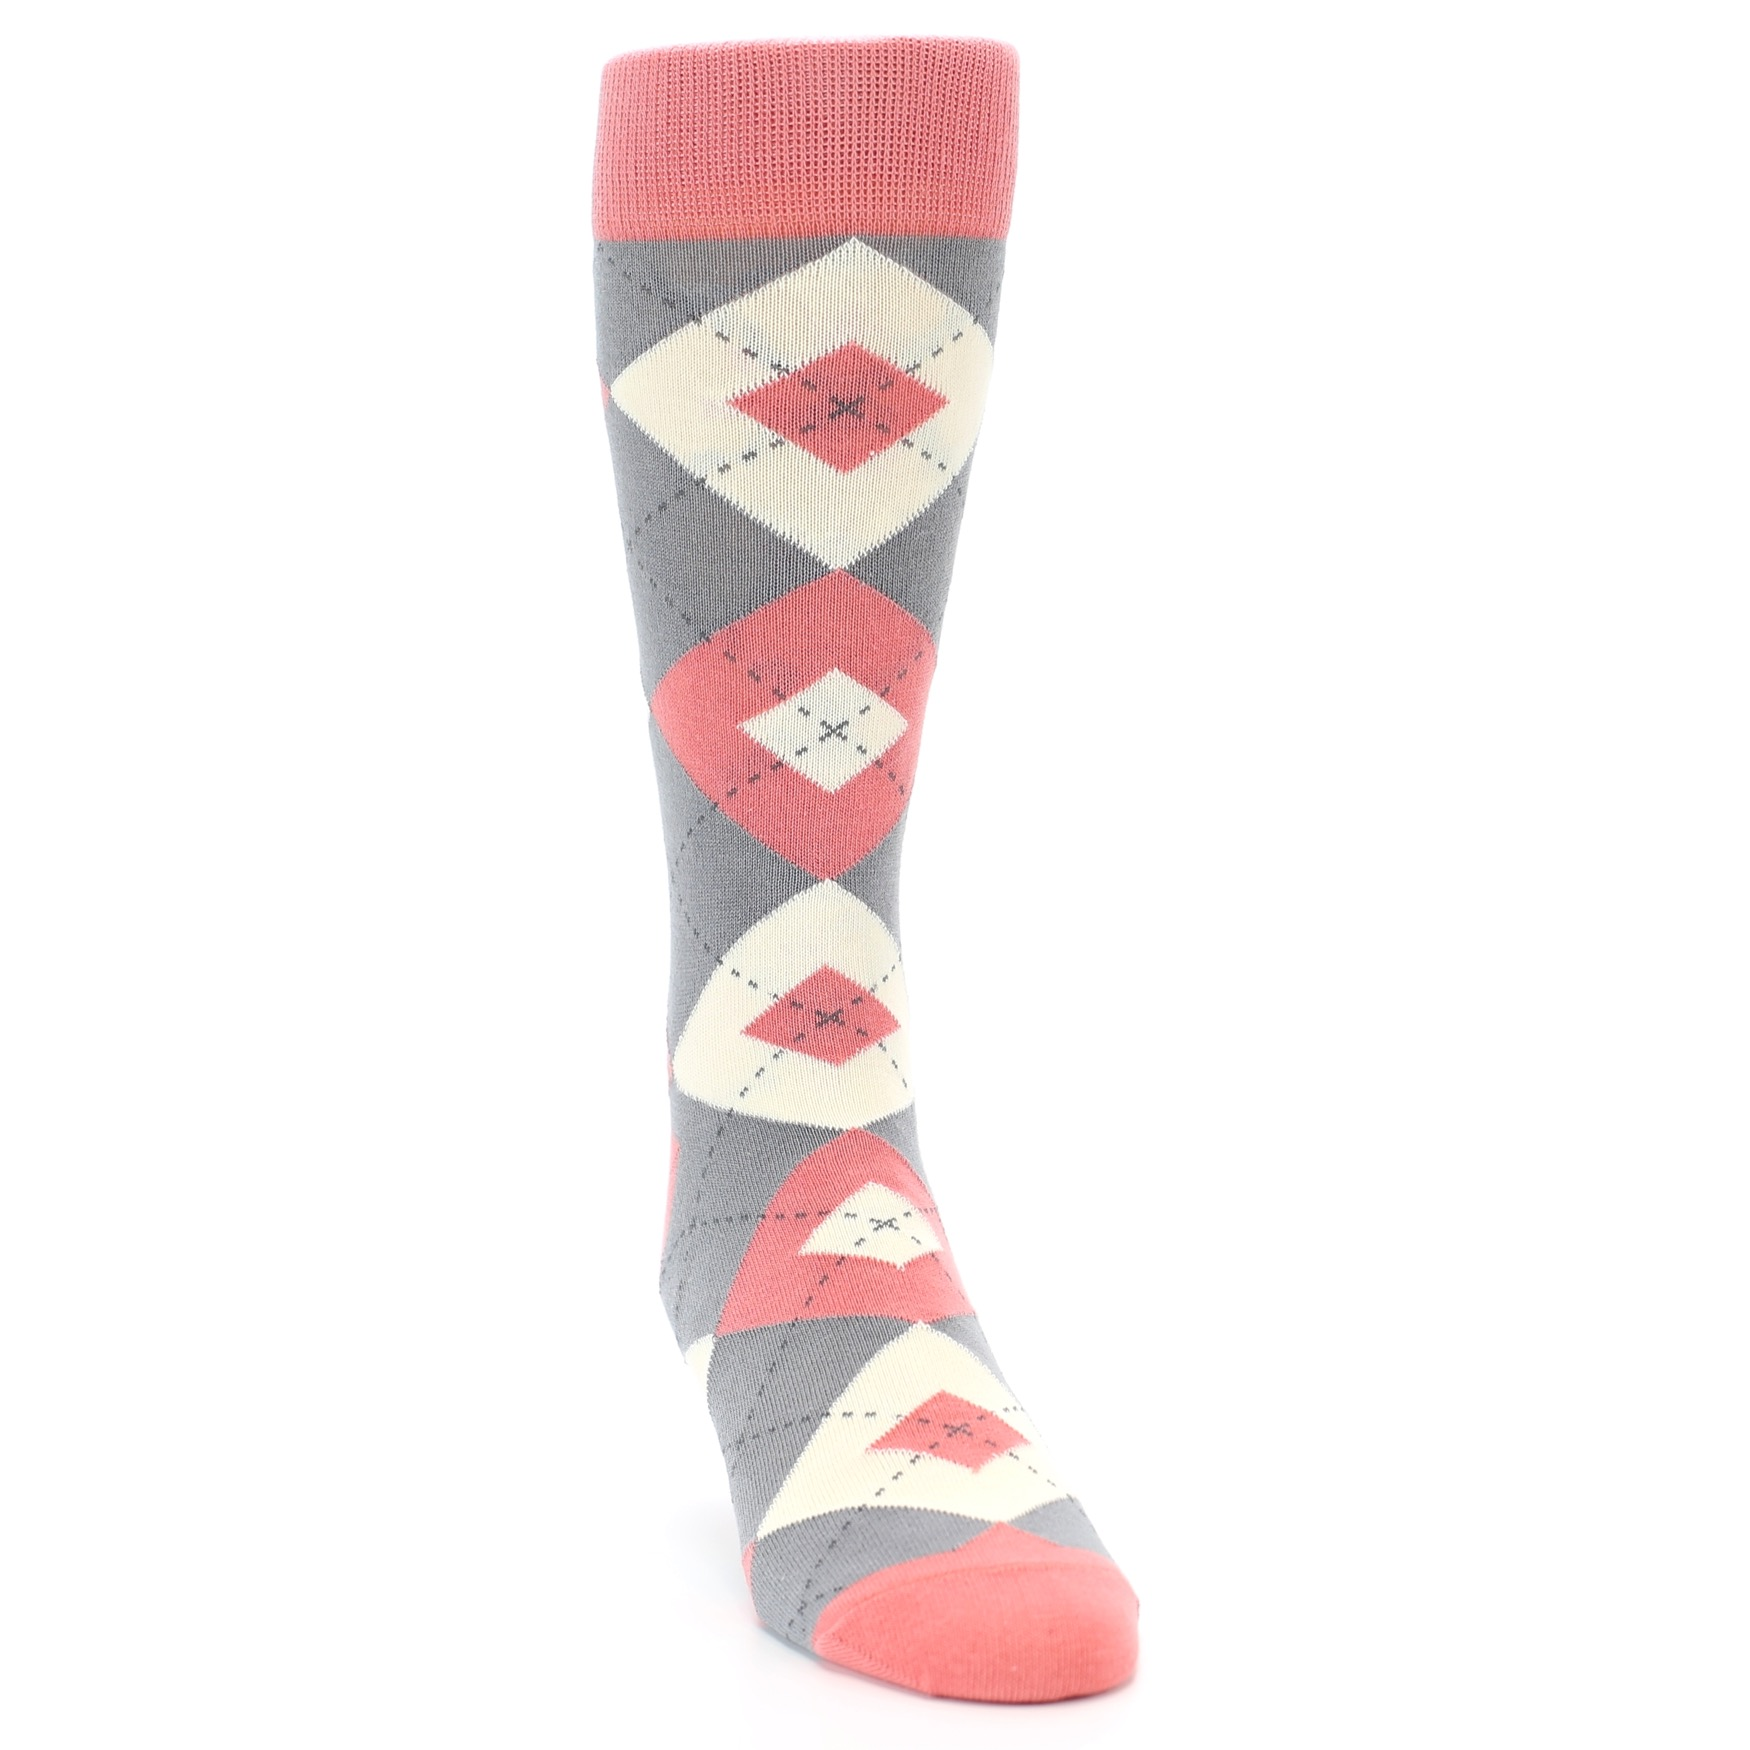 Coral Grey Argyle Wedding Groomsmen Men's Dress Socks – boldSOCKS